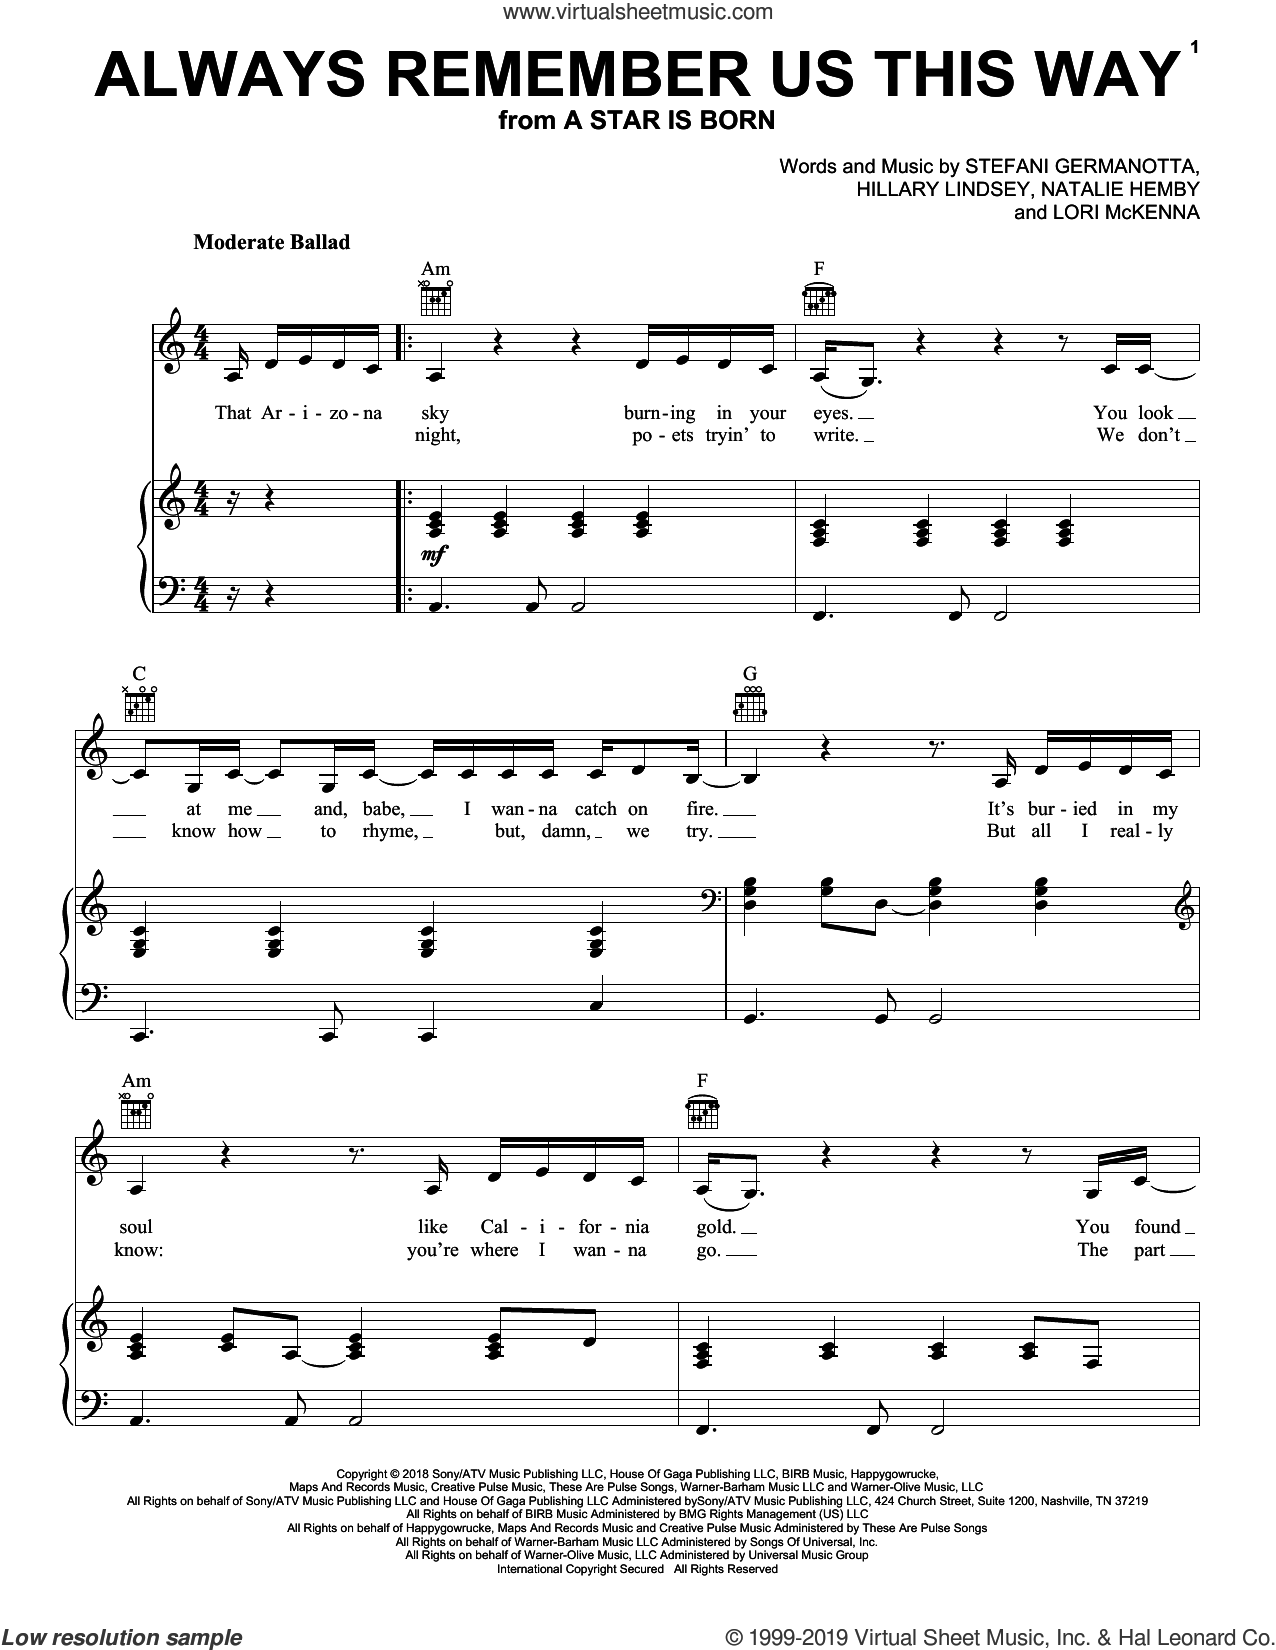 Always Remember Us This Way (from A Star Is Born) sheet music for voice and piano by Lady Gaga, Hillary Lindsey, Lori McKenna and Natalie Hemby, intermediate skill level